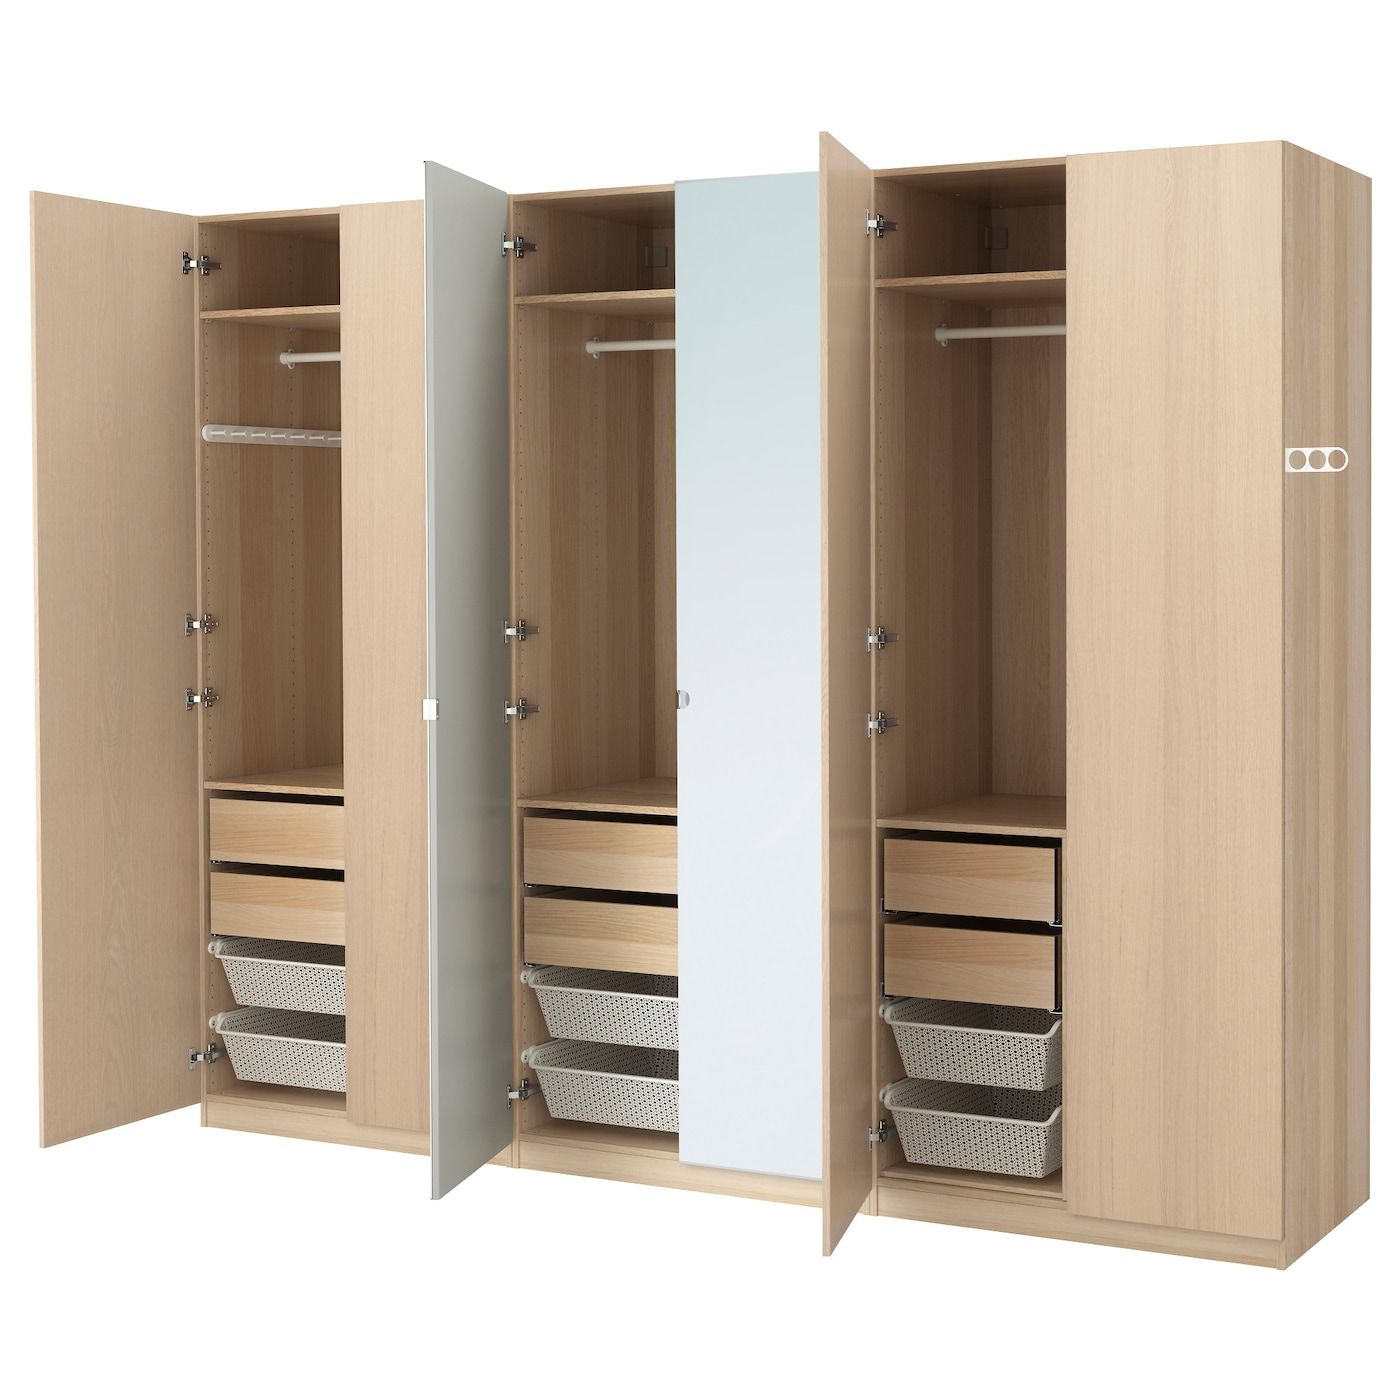 PAX Wardrobe White stained oak effect nexus vikedal 300x60x236 cm IKEA